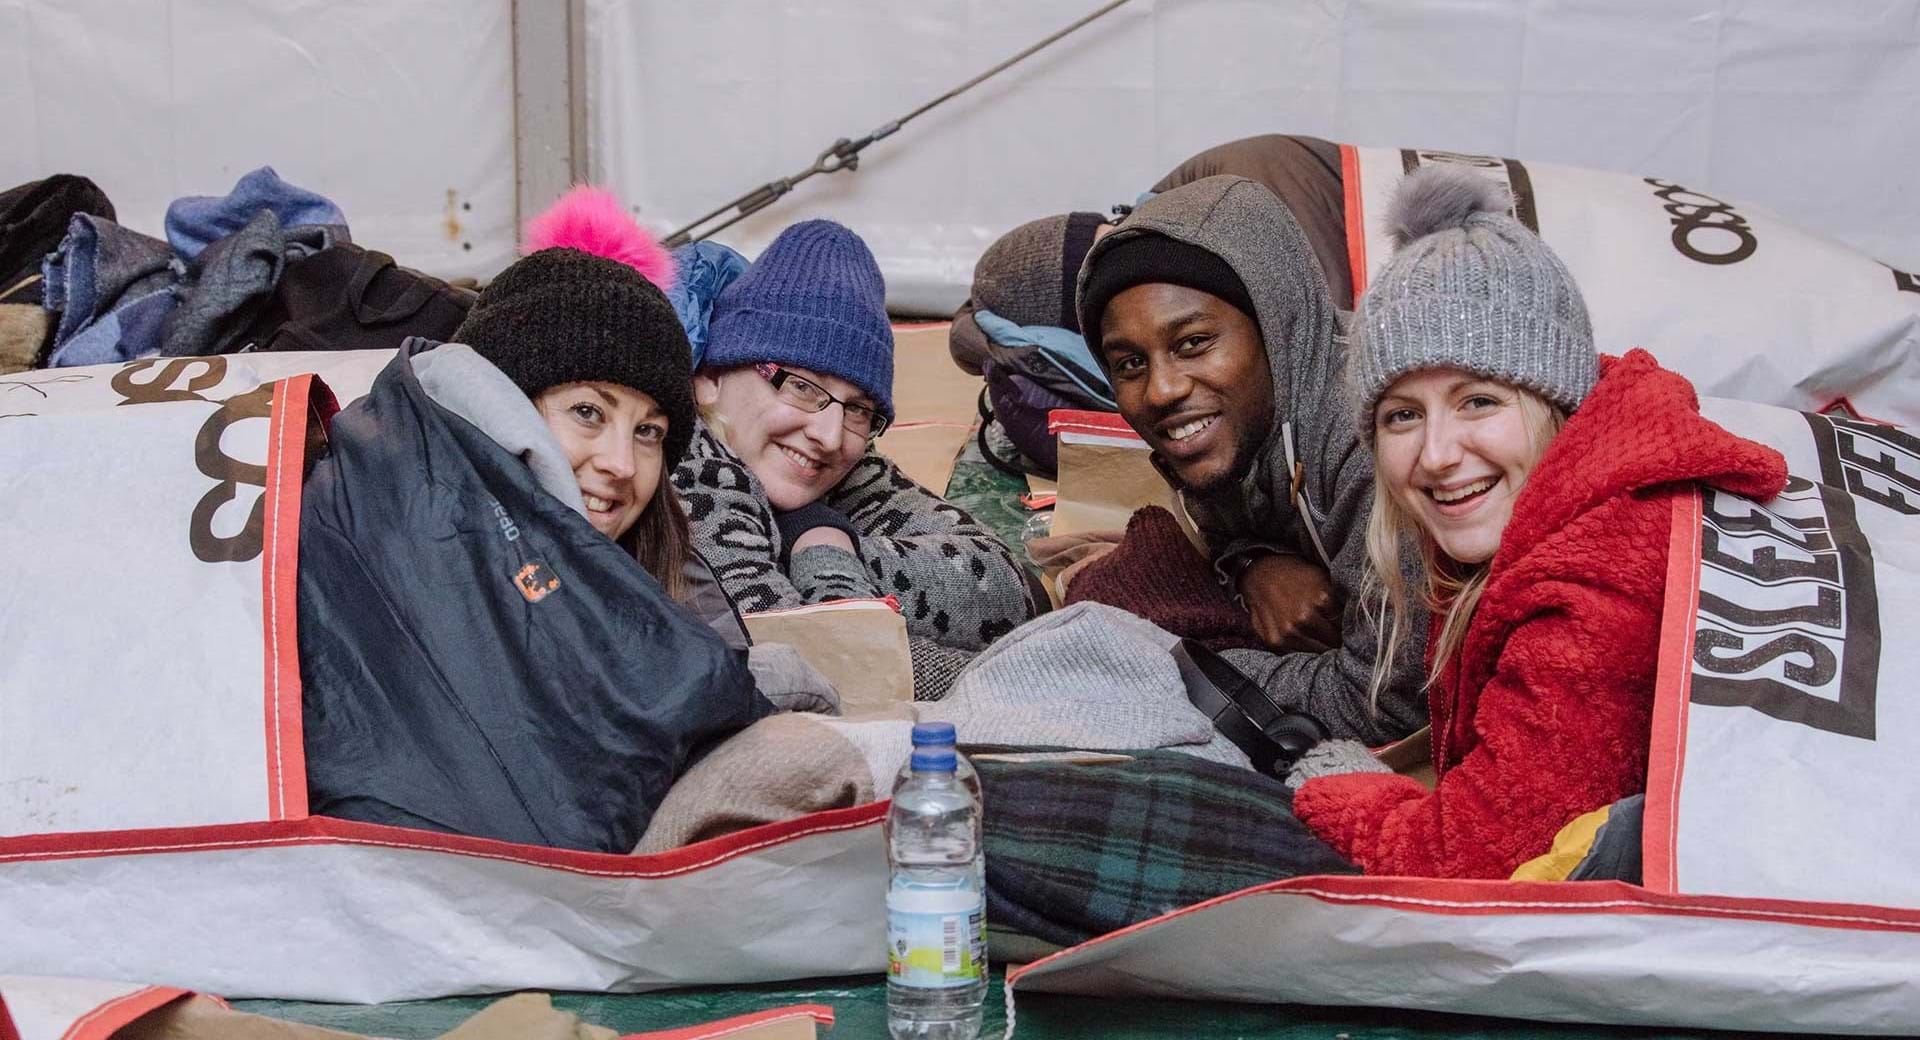 Participants at Centrepoint's Sleep Out event, raising money for homeless young people.